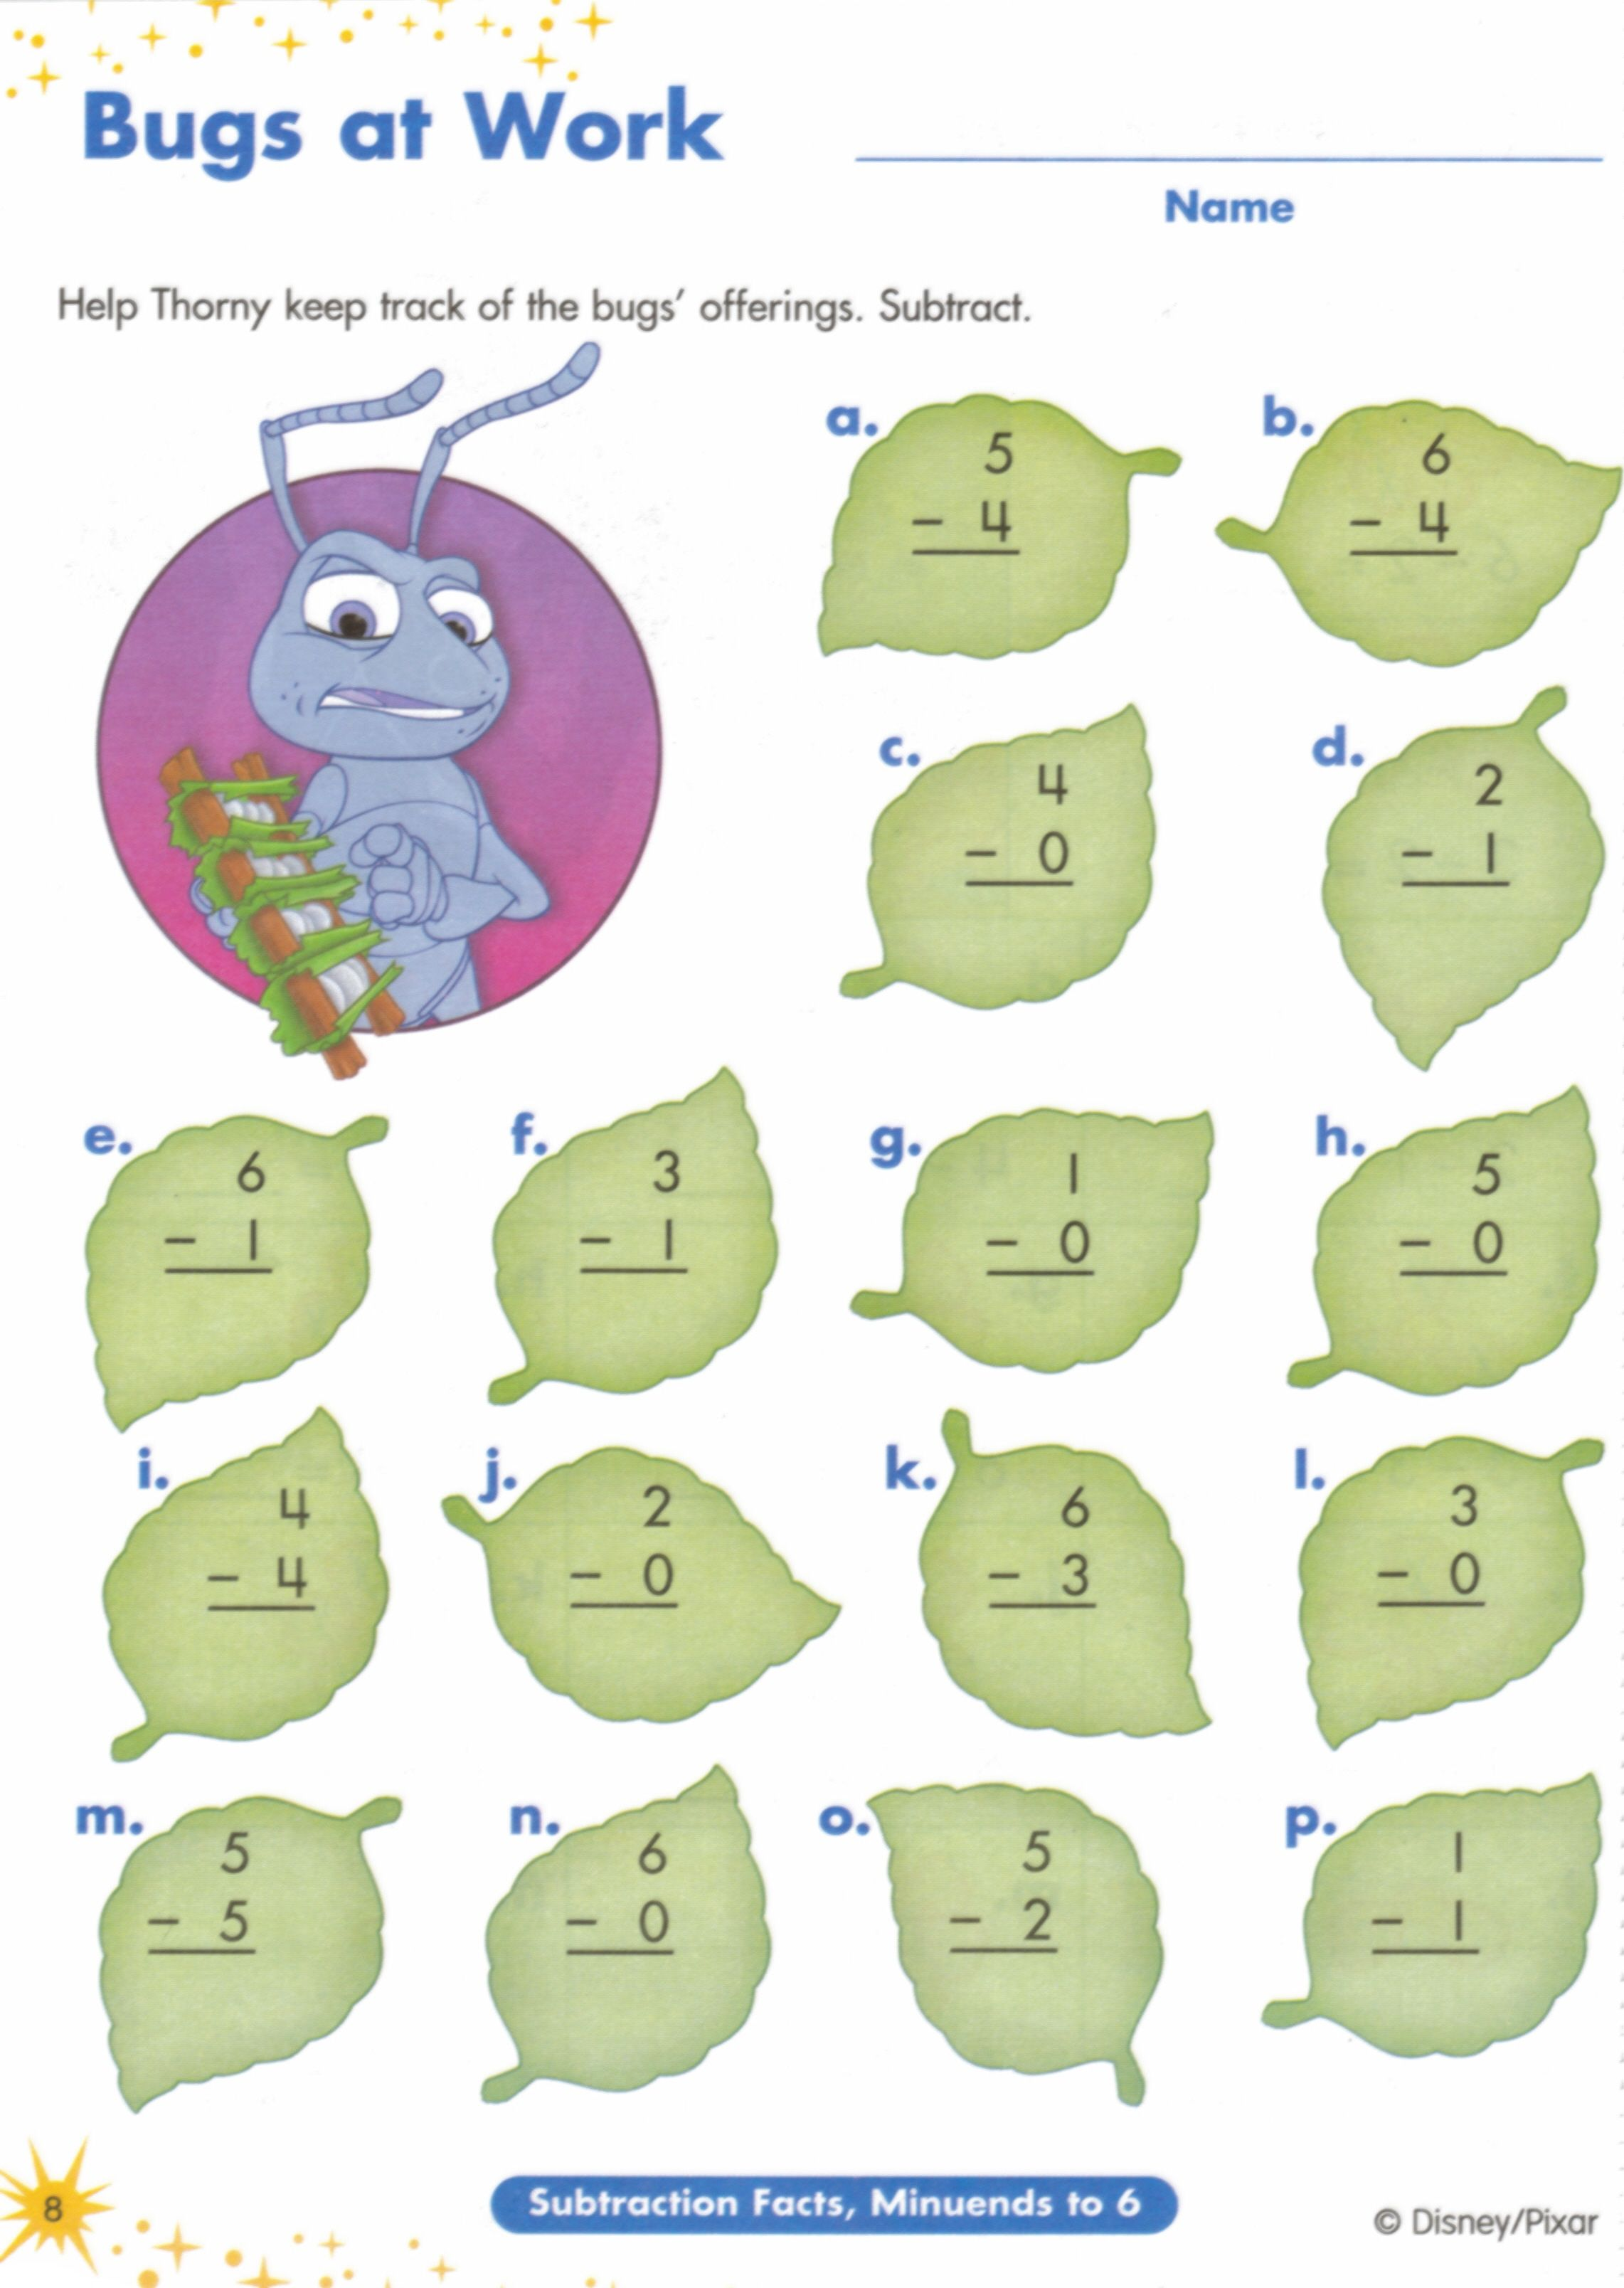 Proatmealus  Gorgeous  Images About Worksheets On Pinterest  Fun Facts For Kids  With Outstanding  Images About Worksheets On Pinterest  Fun Facts For Kids Earth Day Worksheets And Jungles With Amusing Comprehension Worksheets Rd Grade Also Closed Syllable Worksheet In Addition Excel Worksheet Template And Preschool Letter N Worksheets As Well As Kindergarten Fill In The Blank Worksheets Additionally Social Studies Worksheets Kindergarten From Pinterestcom With Proatmealus  Outstanding  Images About Worksheets On Pinterest  Fun Facts For Kids  With Amusing  Images About Worksheets On Pinterest  Fun Facts For Kids Earth Day Worksheets And Jungles And Gorgeous Comprehension Worksheets Rd Grade Also Closed Syllable Worksheet In Addition Excel Worksheet Template From Pinterestcom